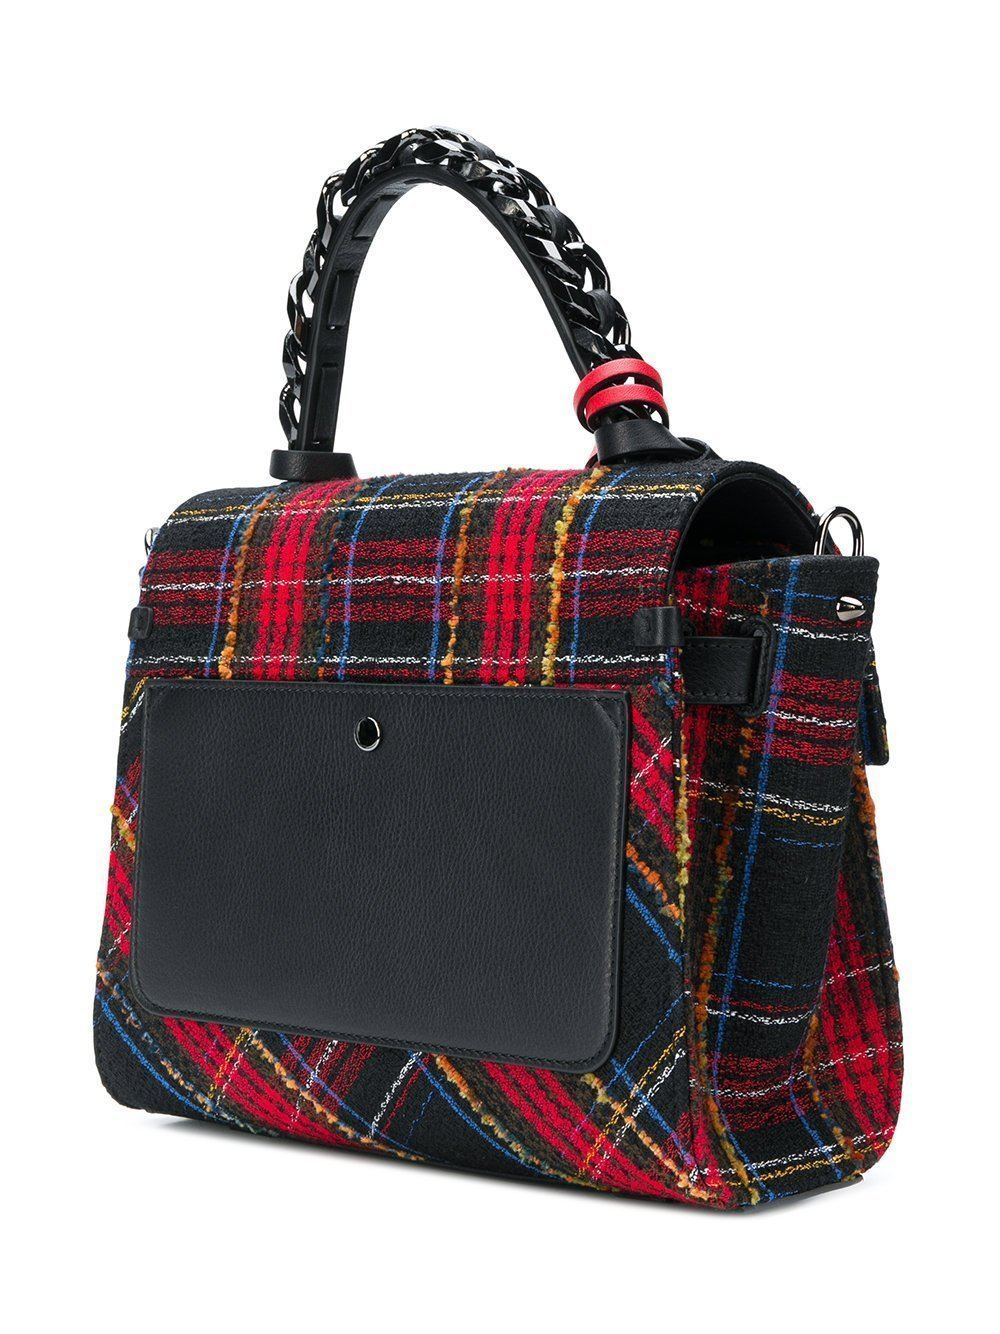 Elena Ghisellini S Angel Plaid Top Handle Handbag Handbag Elena Ghisellini